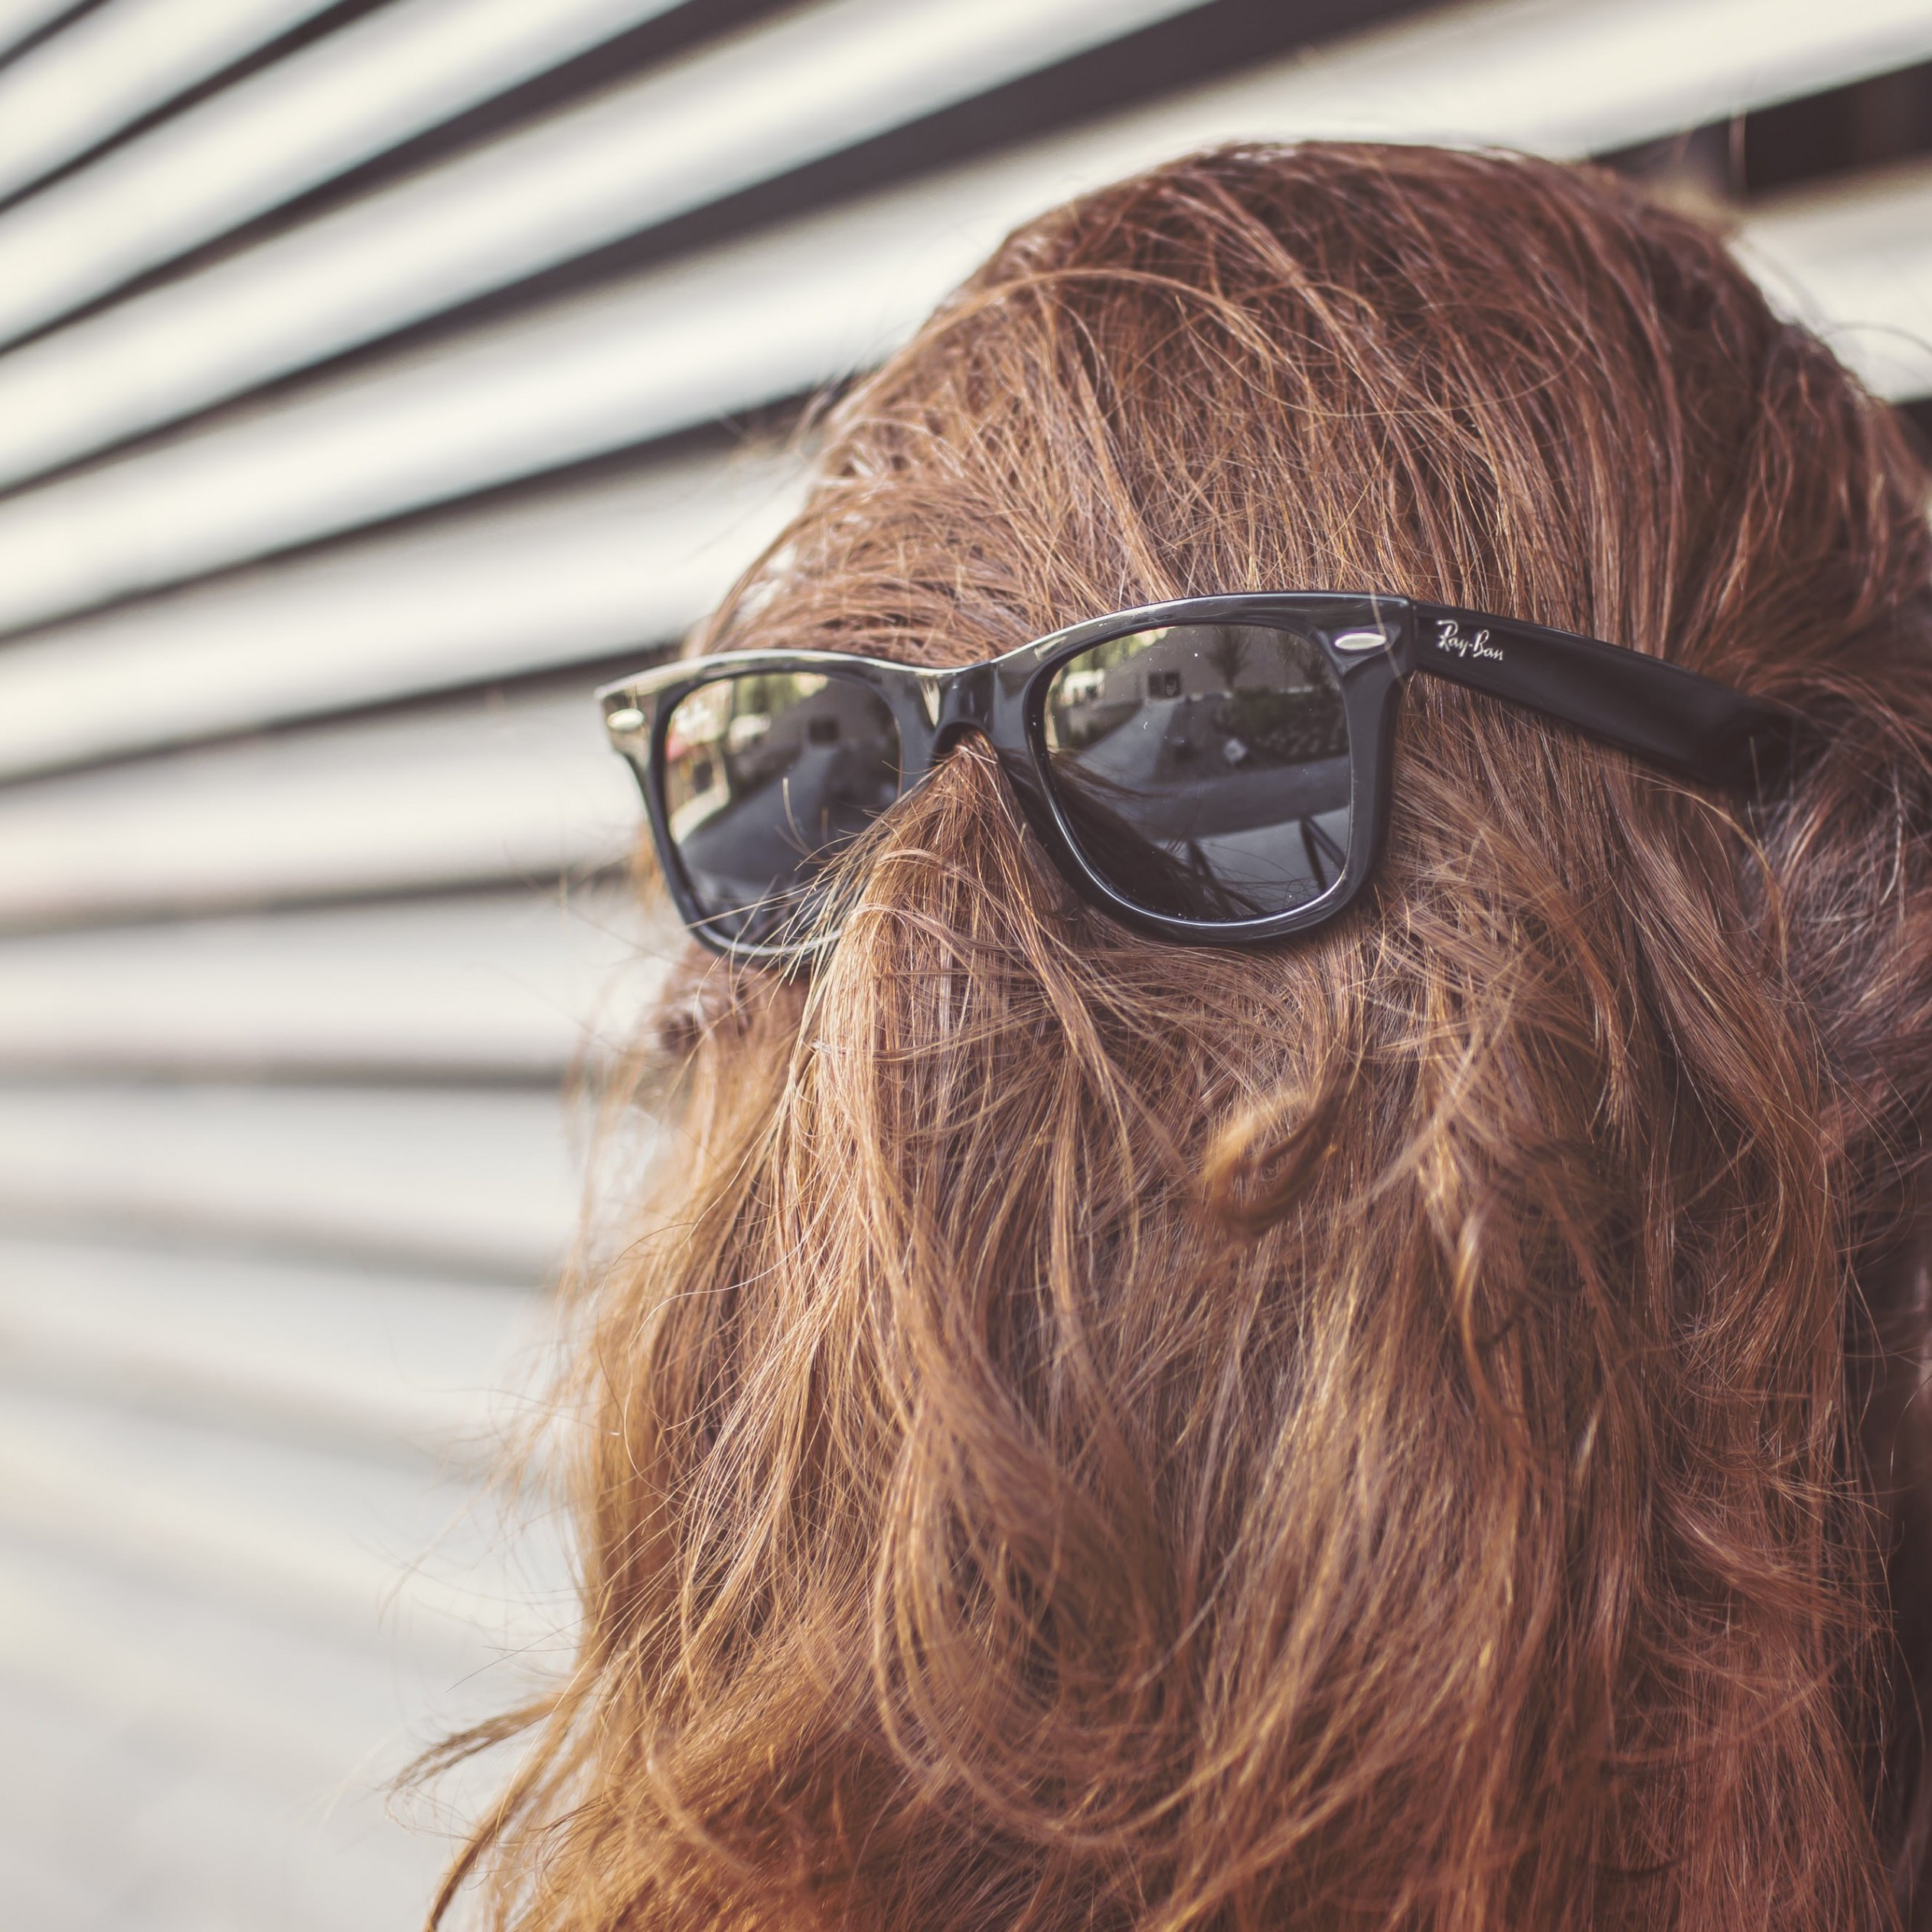 Chewbacca Girl Wallpaper for Apple iPad mini 2